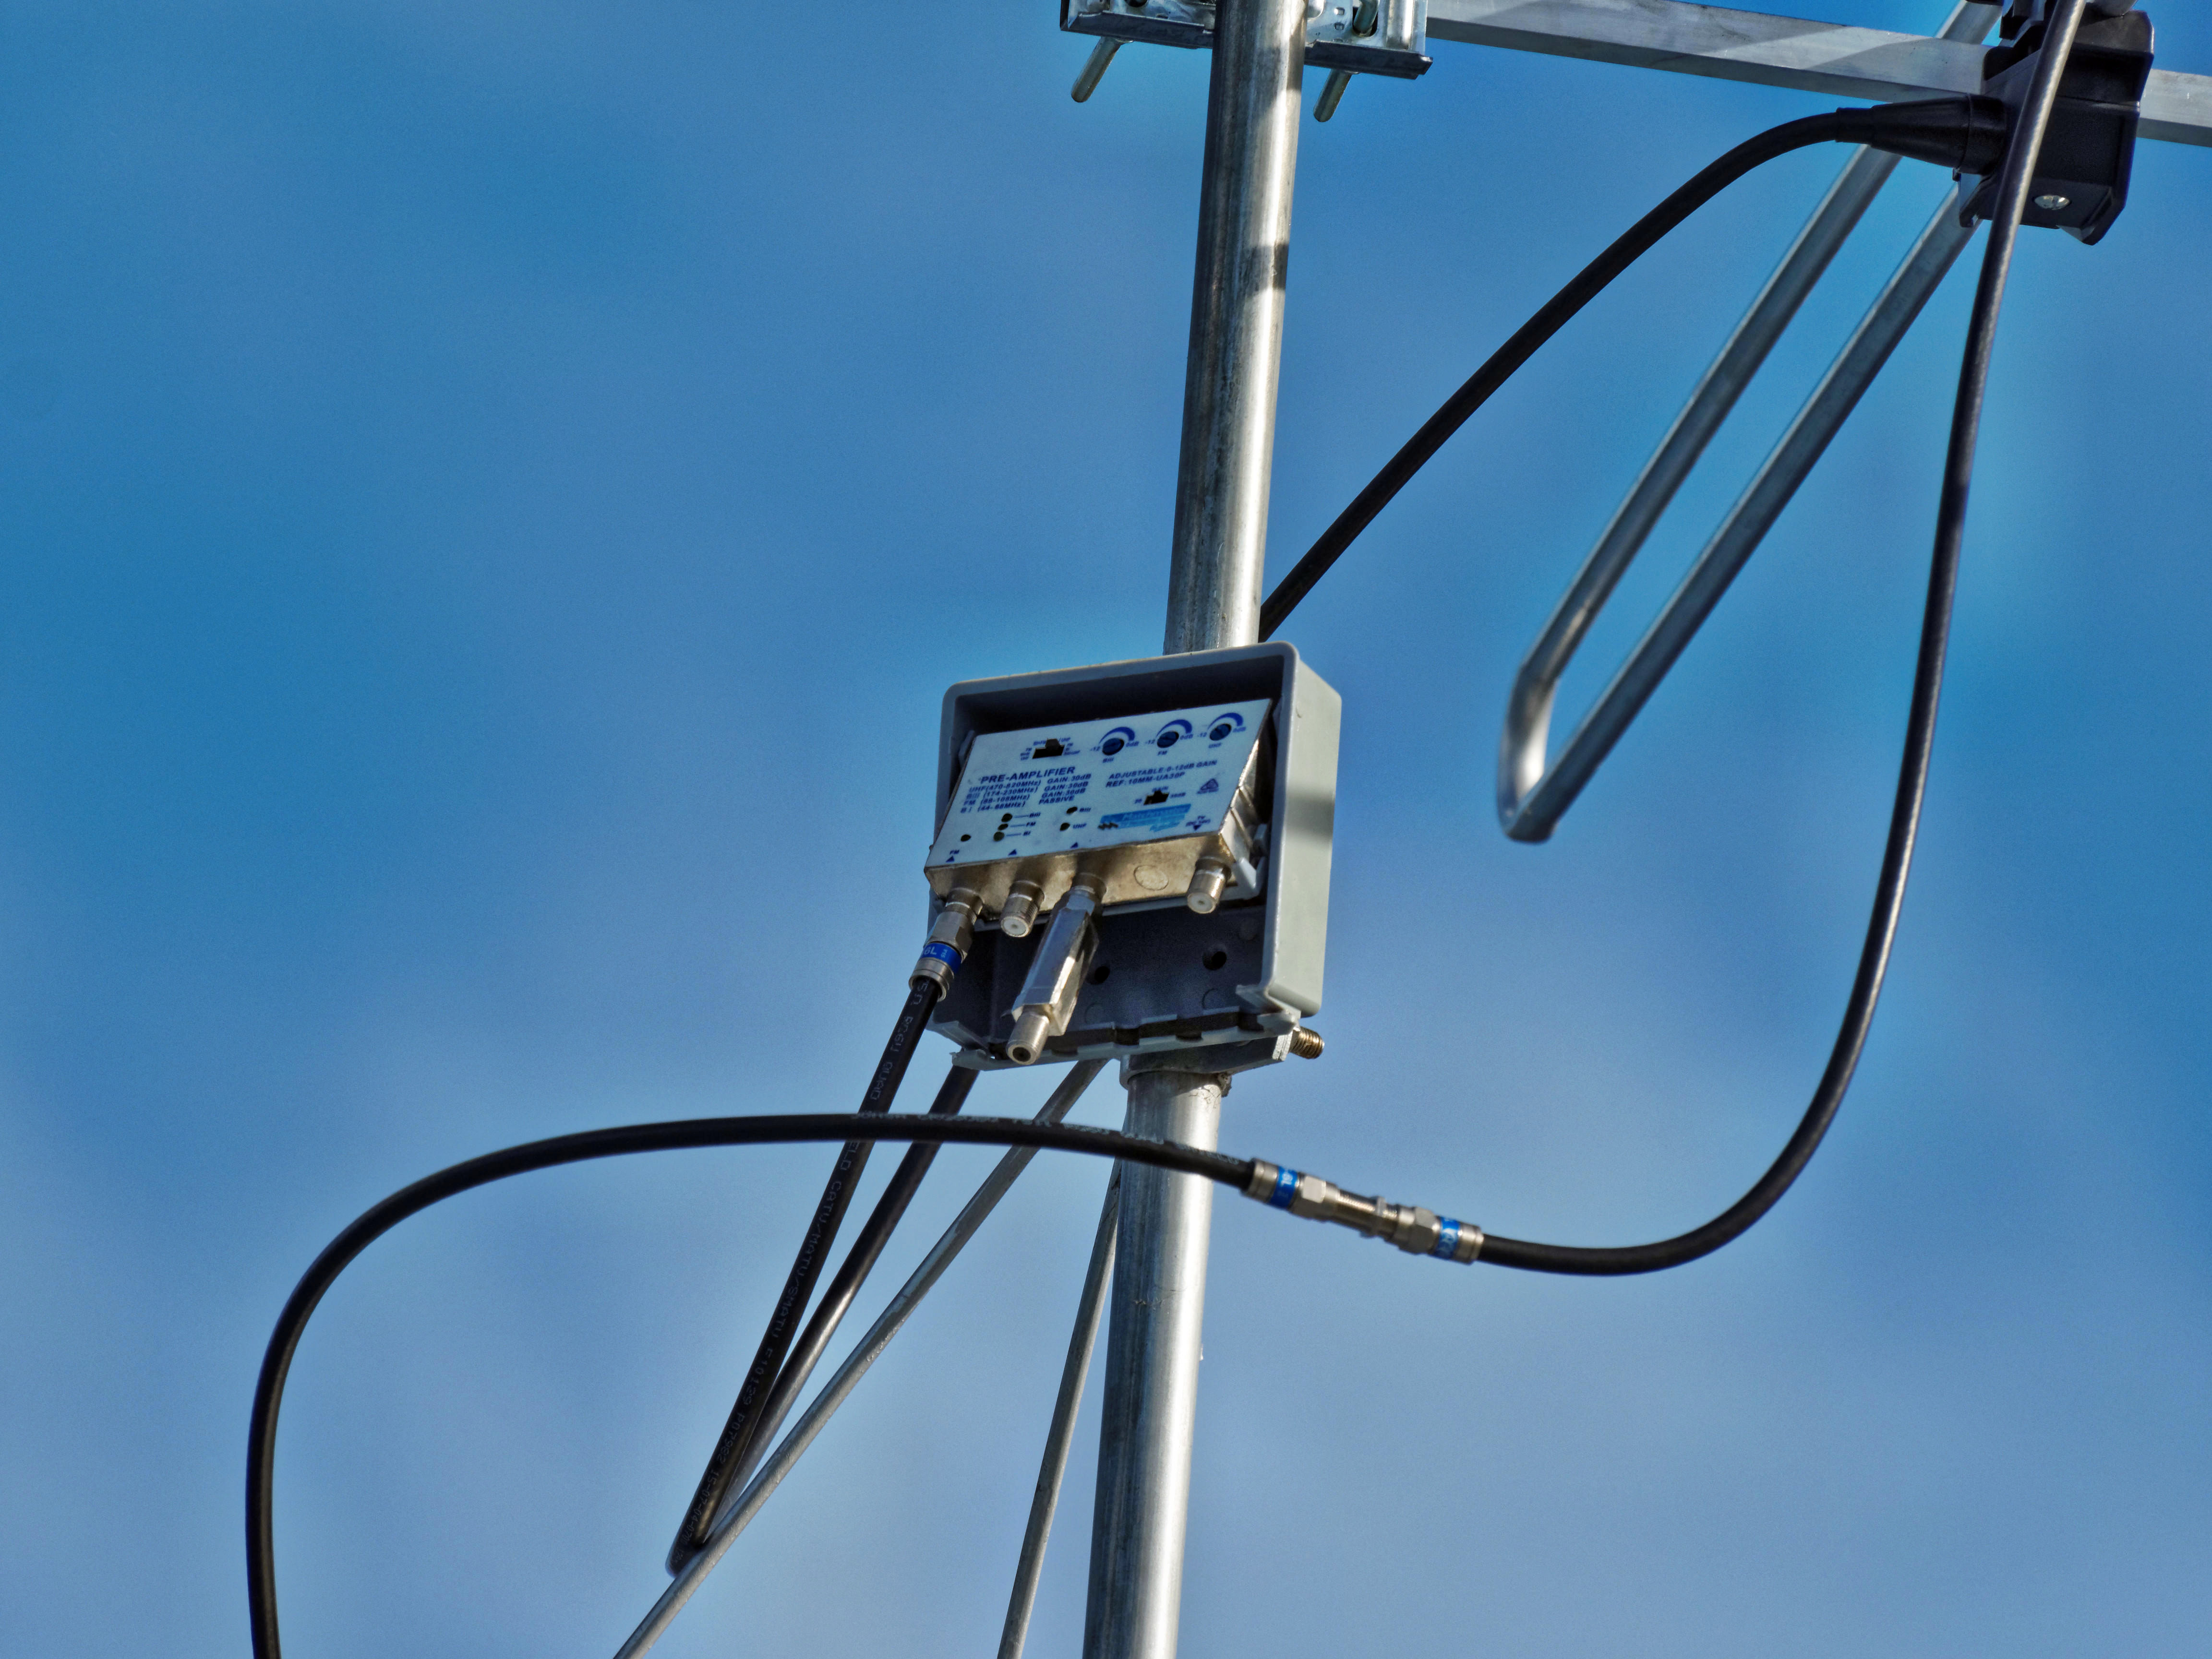 This should be Antenna-1.jpeg.  Is it missing?